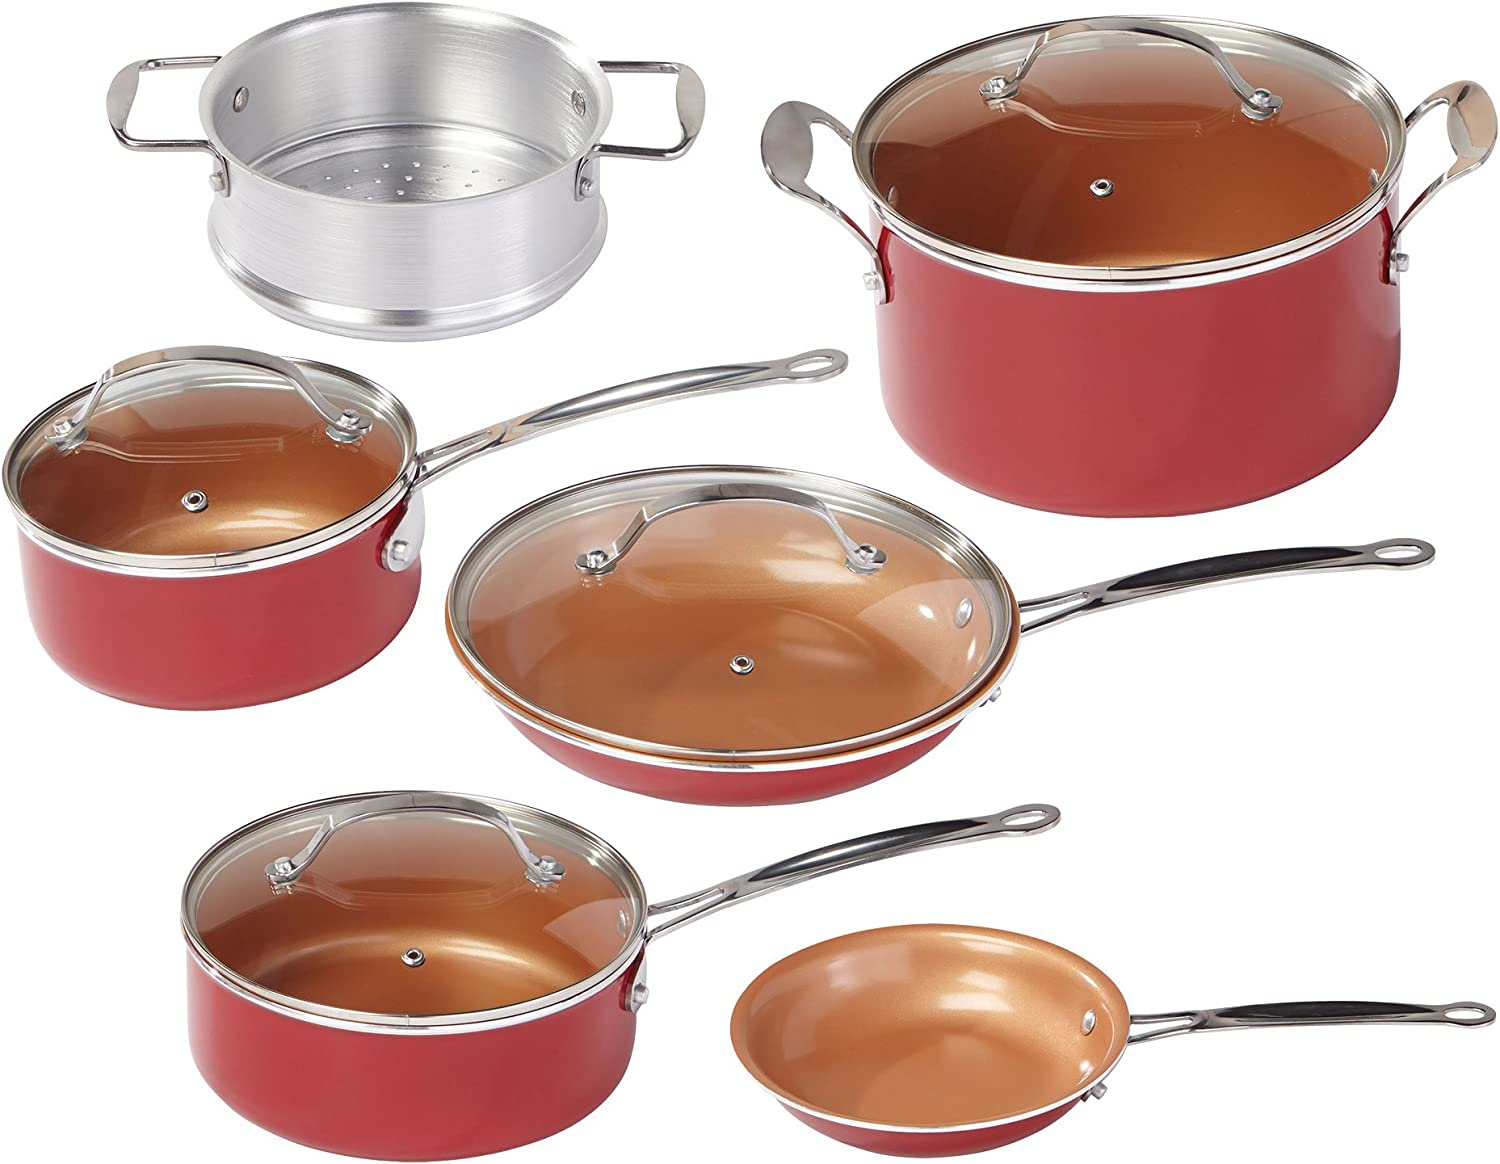 BulbHead Copper-Infused Ceramic Non-Stick Cookware Set (Red Copper Pan)